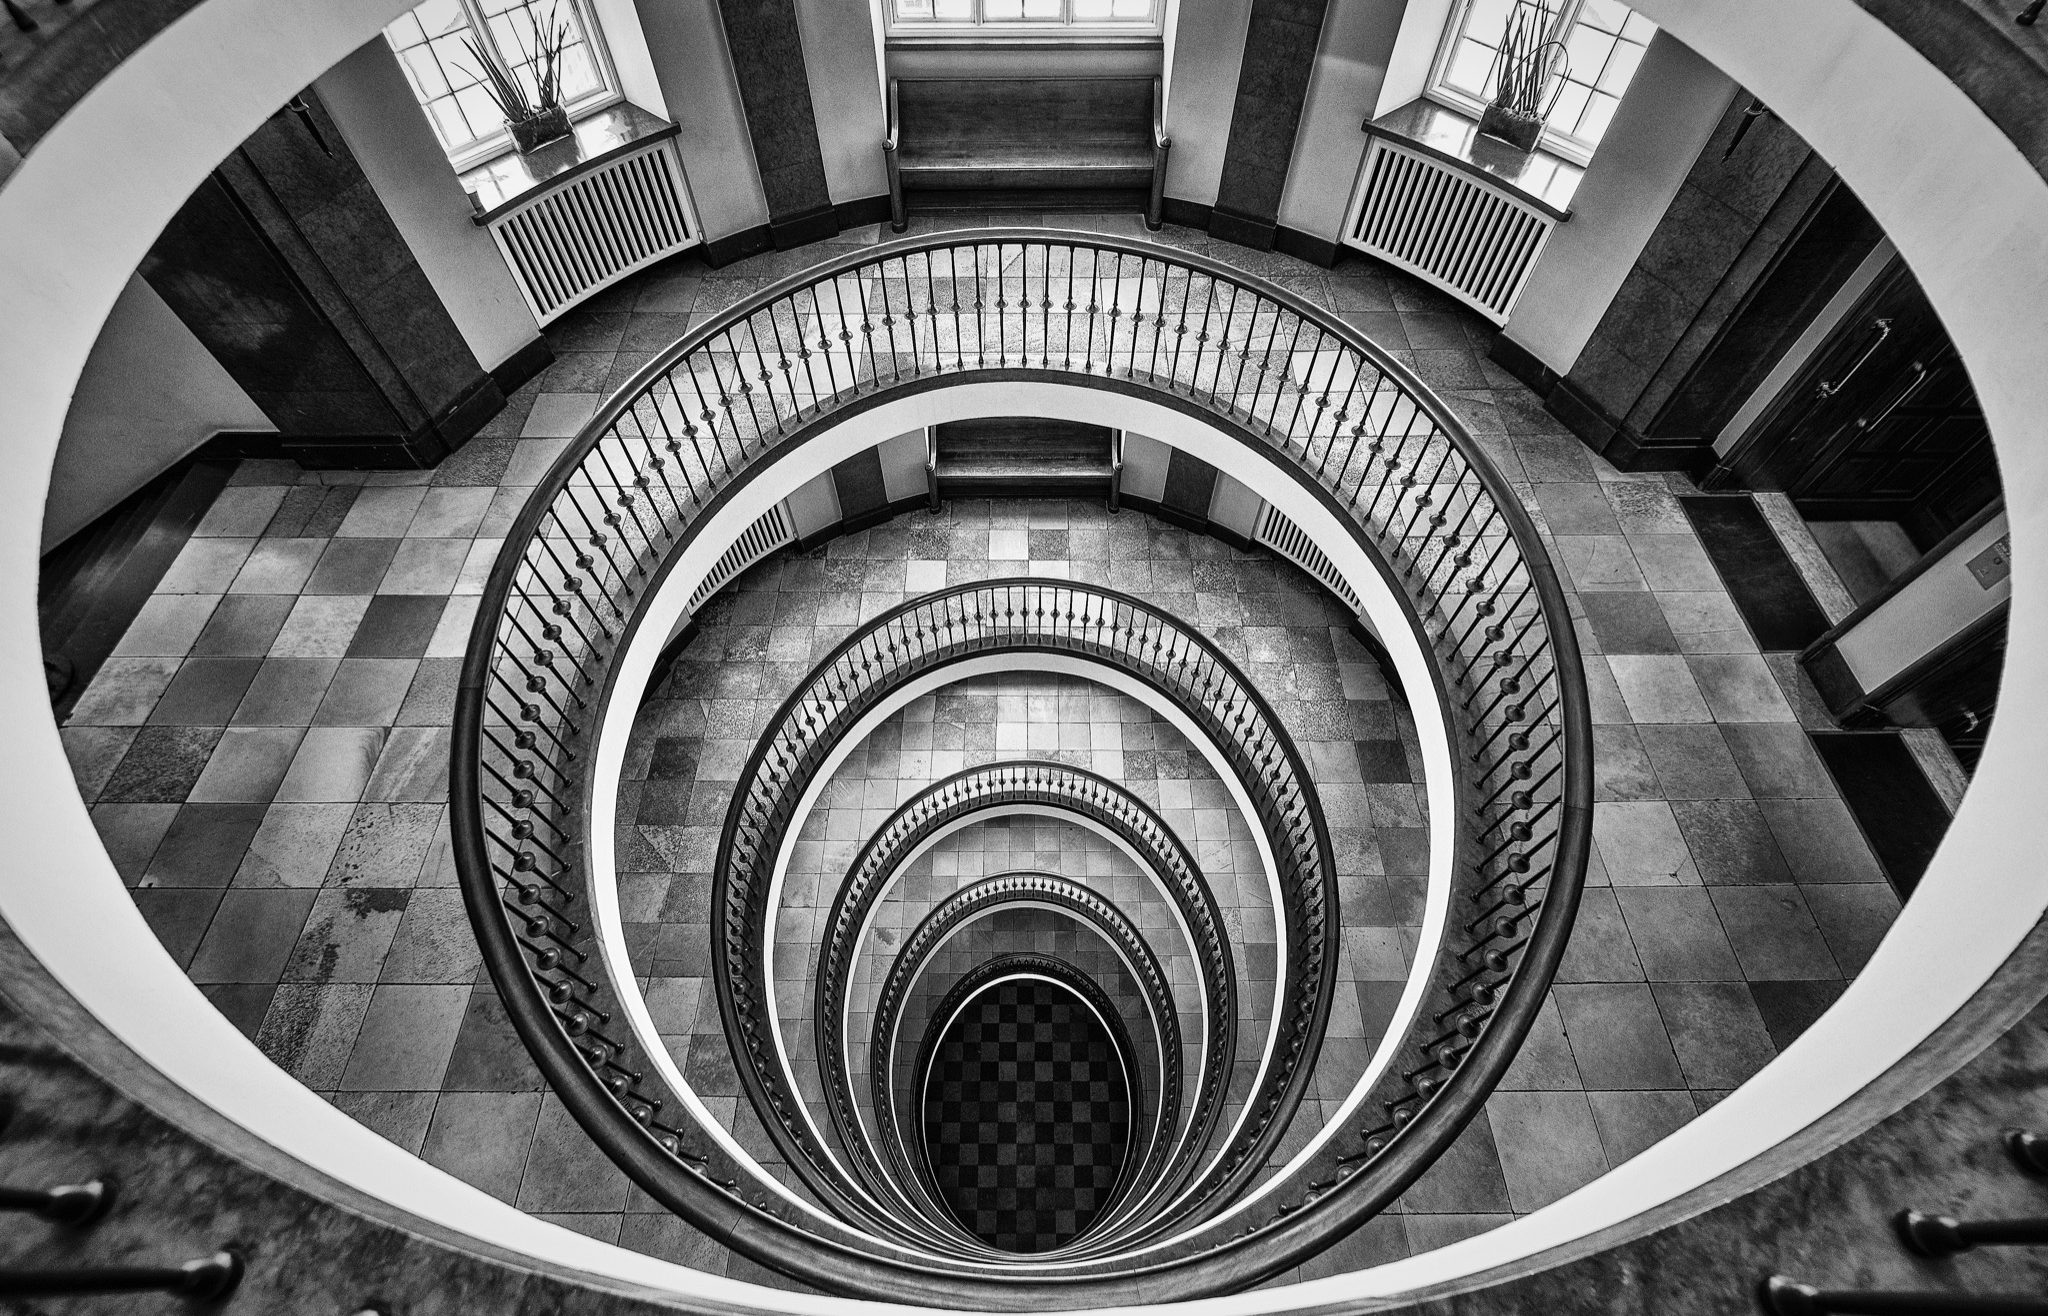 The iconic open oval staircase platforms in Axelborg Tower in Copenhagen.